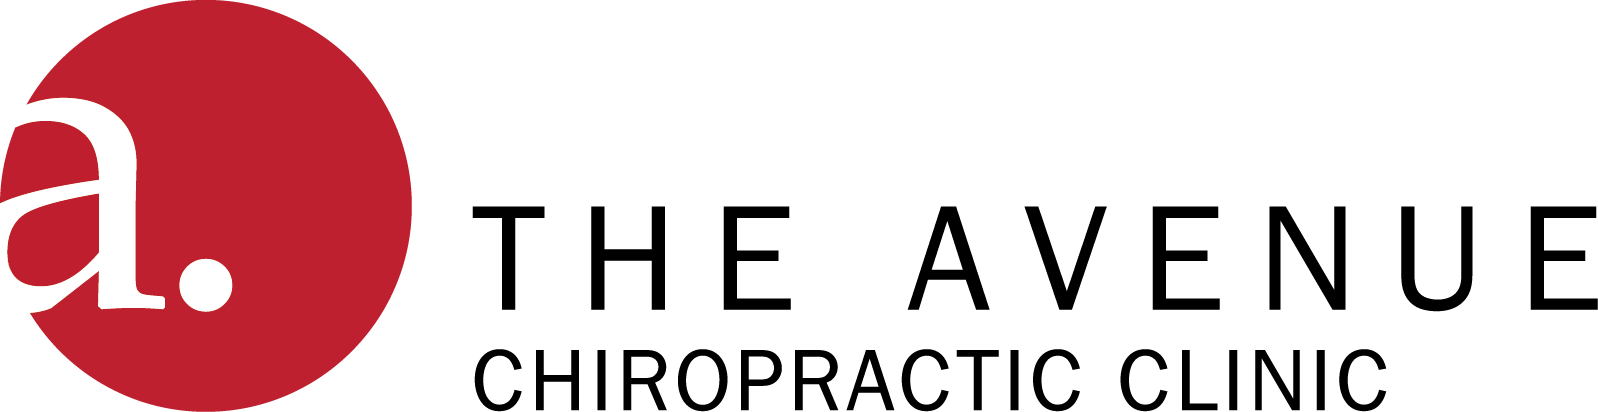 The Avenue Chiropractic Clinic